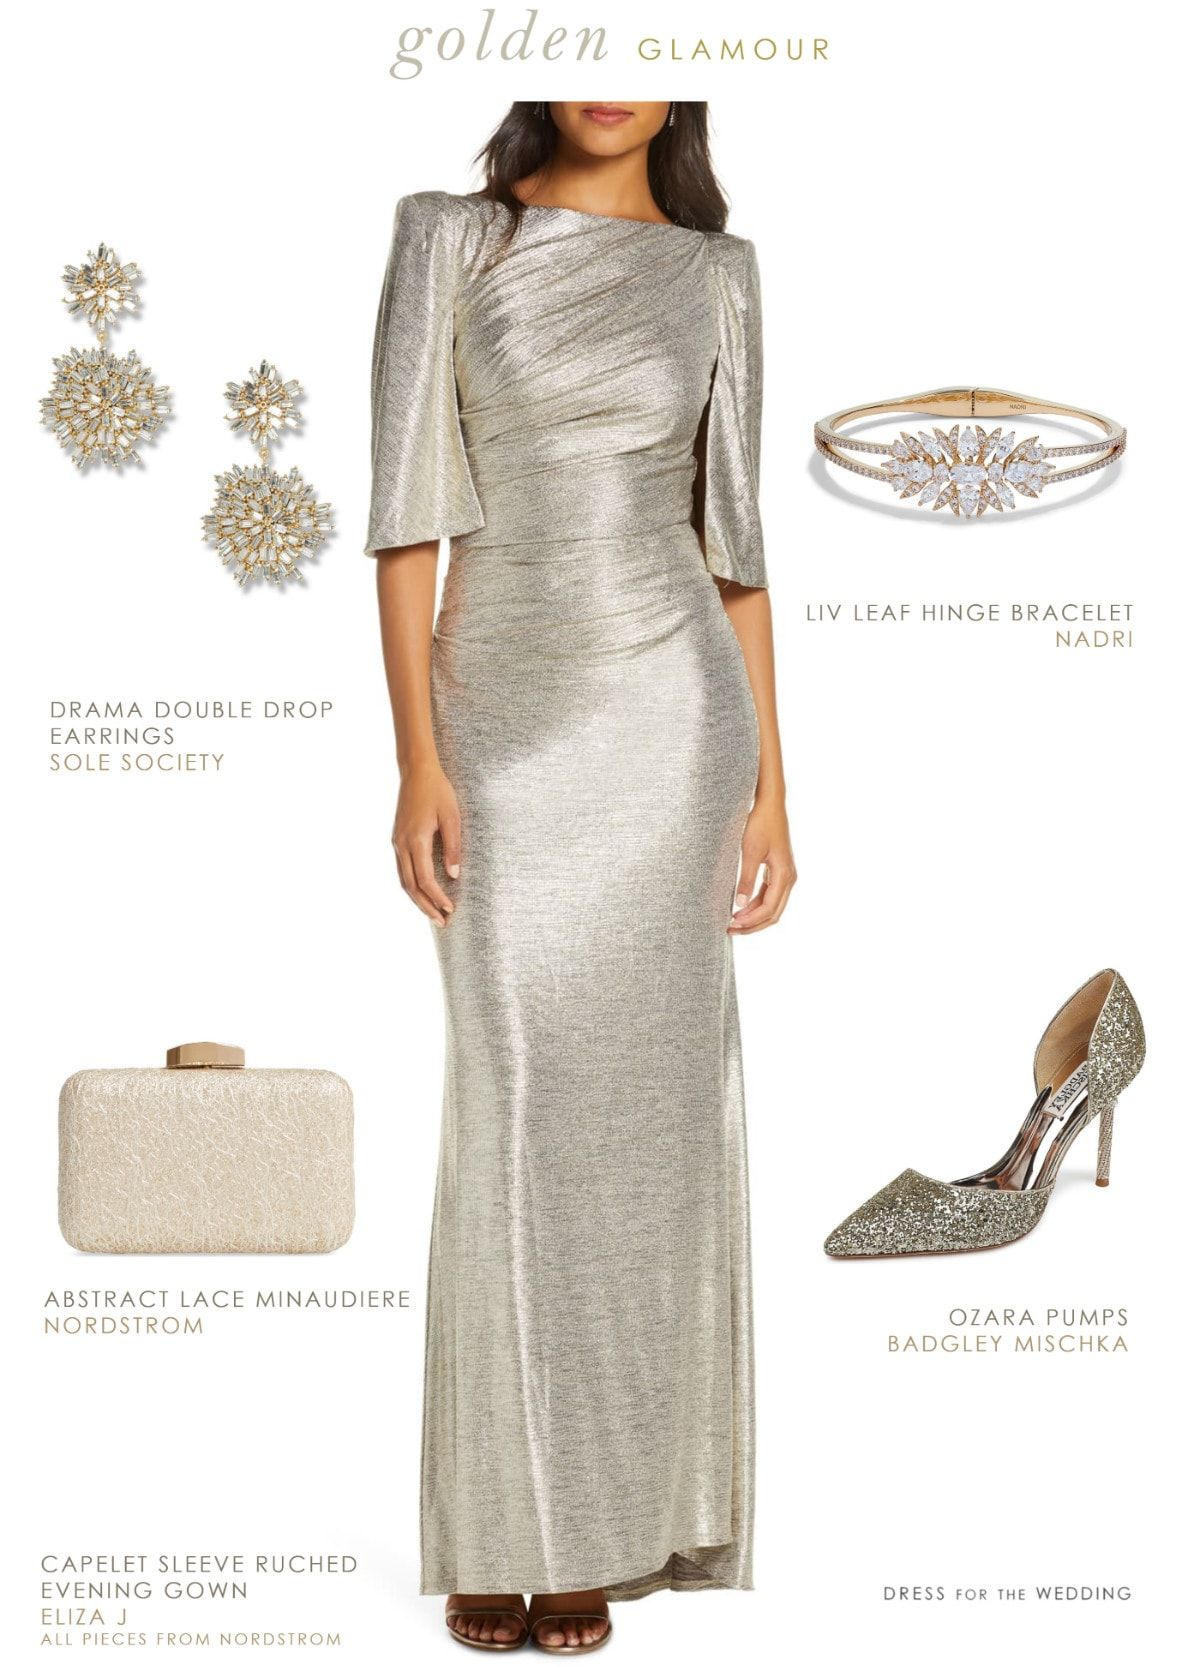 Winter Special Occasion Gowns From Nordstrom Dress For The Wedding Mother Of The Bride Dresses Long Special Occasion Gowns Special Occasion Dresses Long